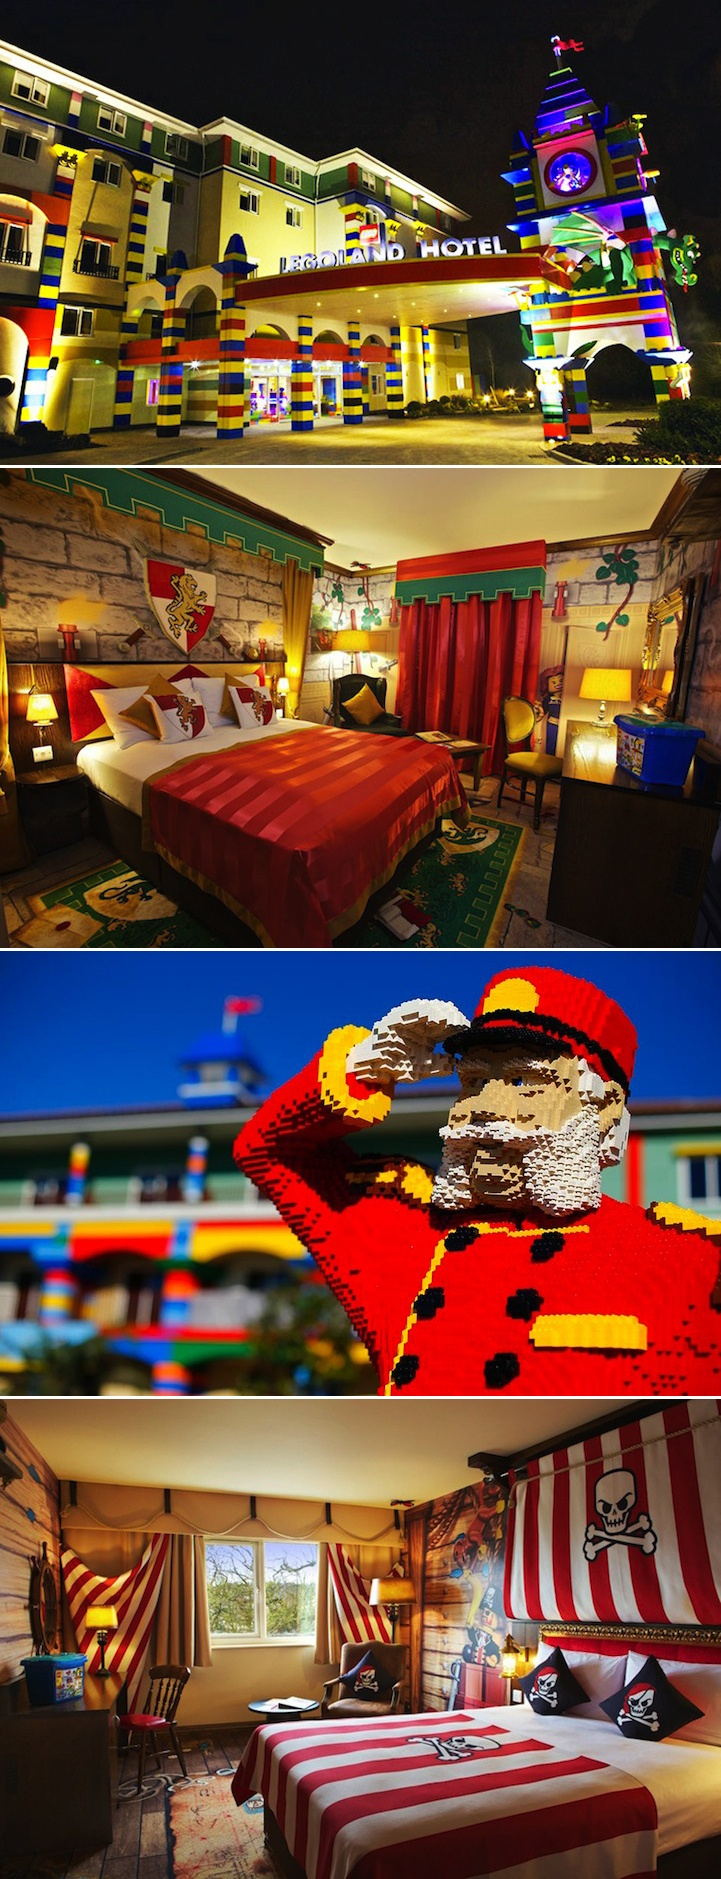 Real Life LEGO Hotel is Every Kidu0027s